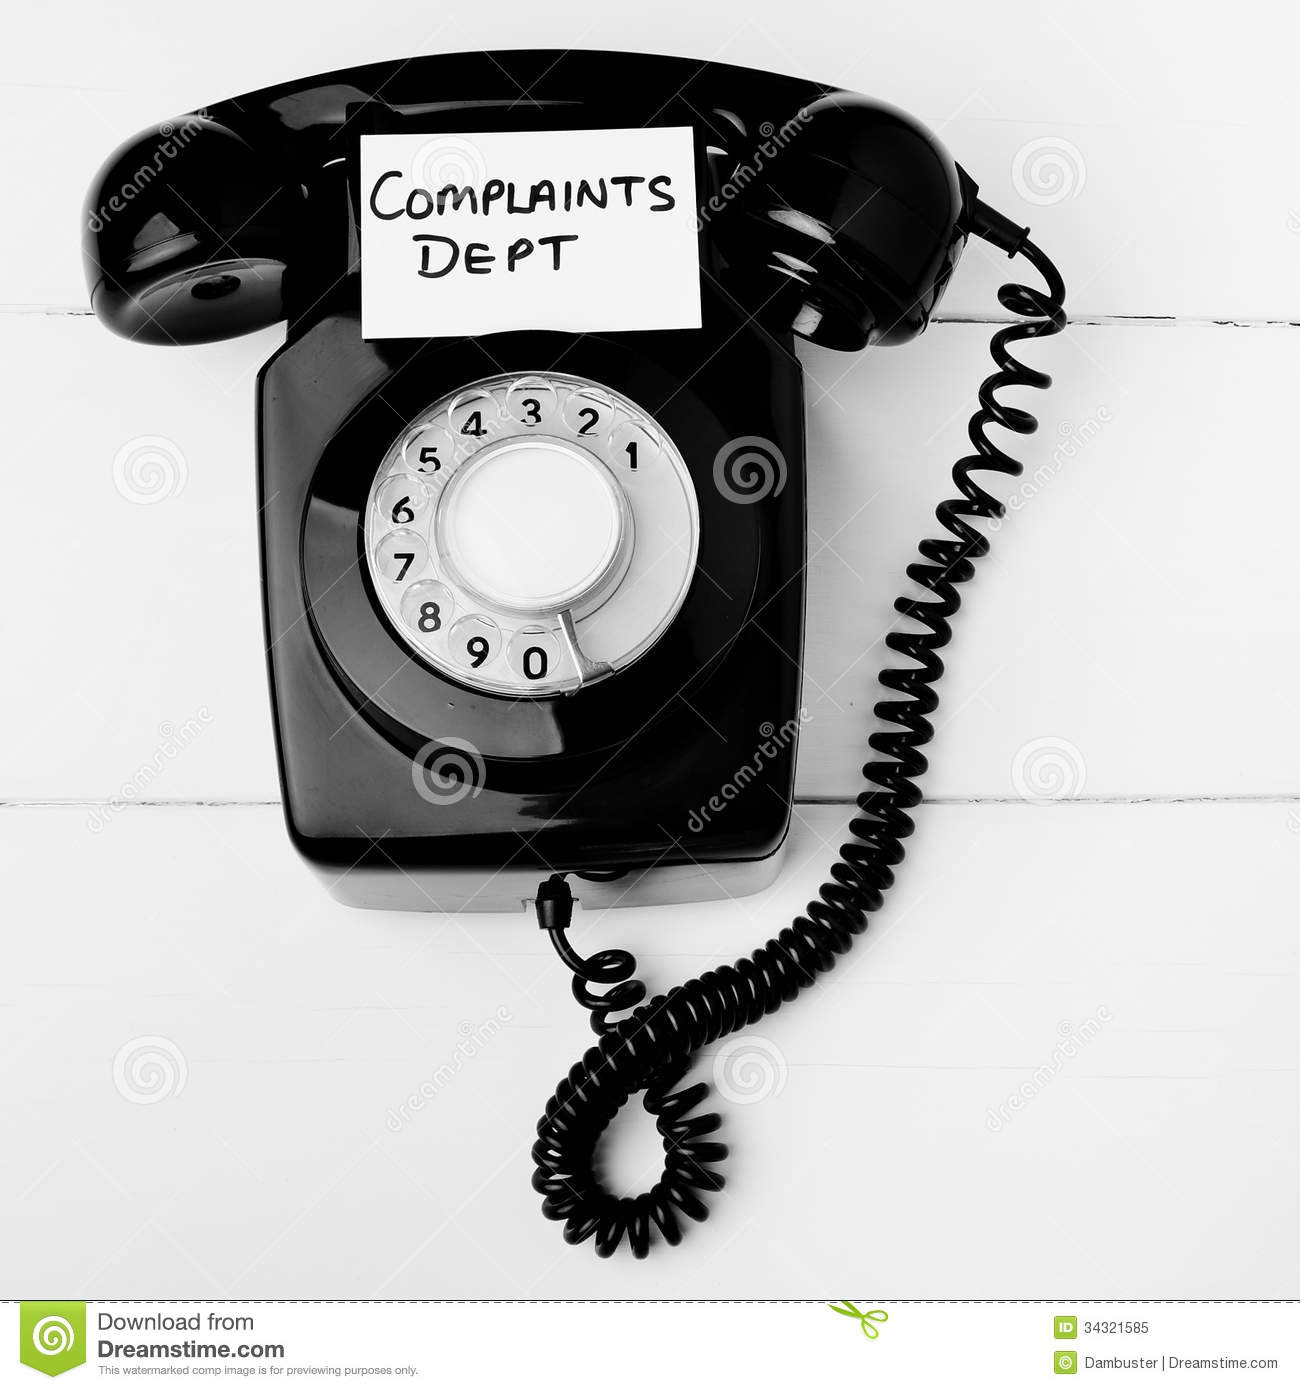 Telephone Repair Service : Customer service complaints department concept stock image